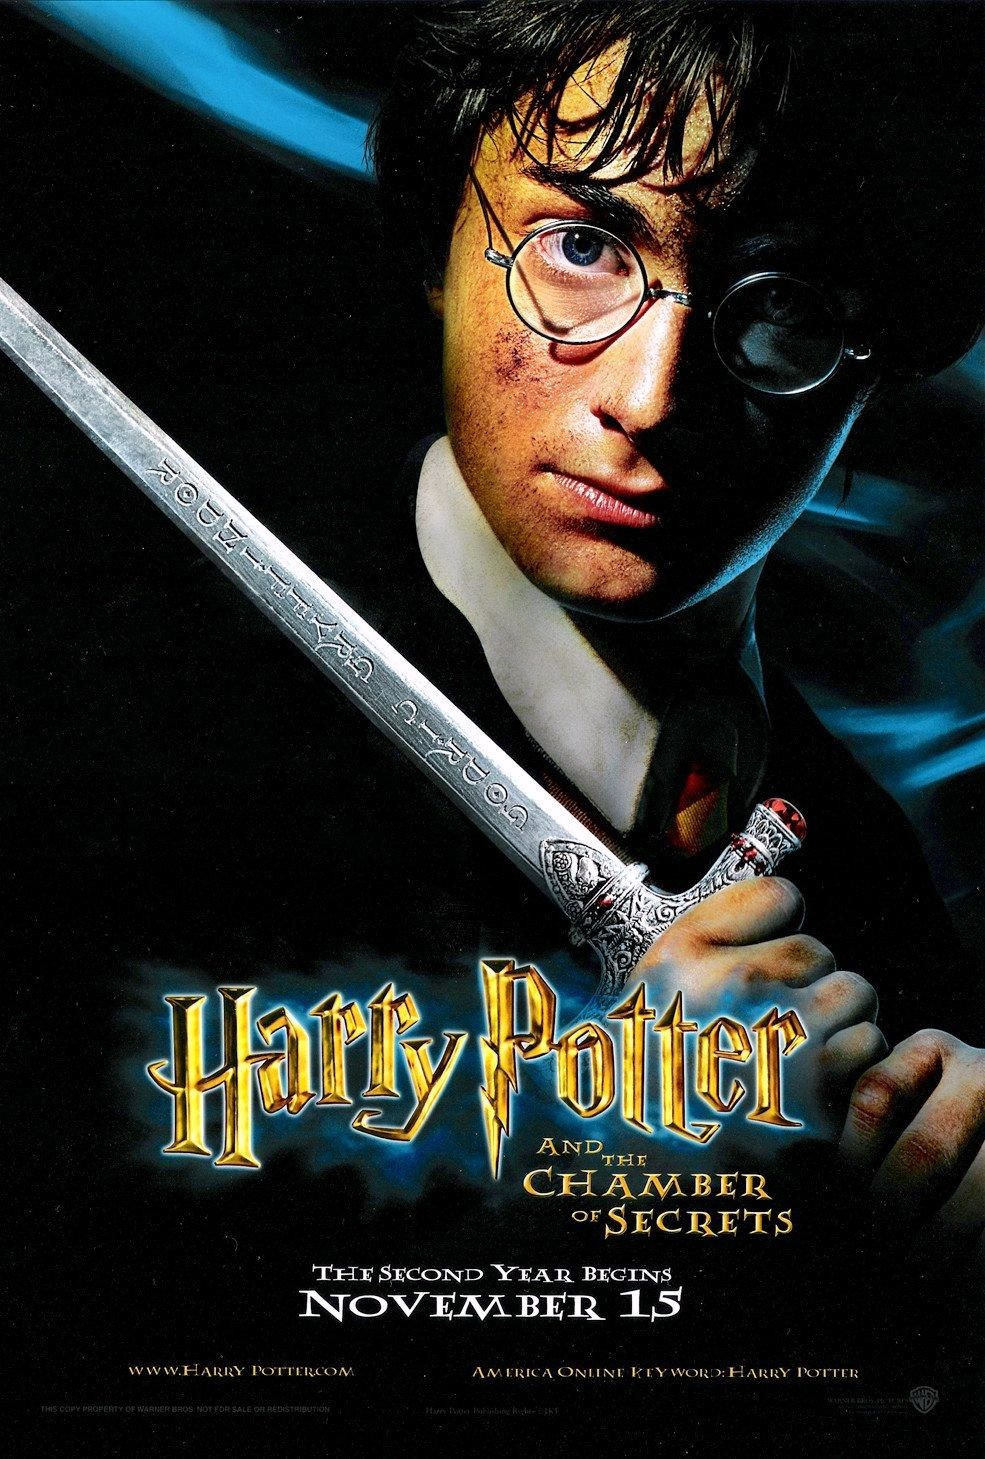 Fichier posterhp2 harry wiki harry potter - Harry potter et la chambre des secrets streaming hd ...